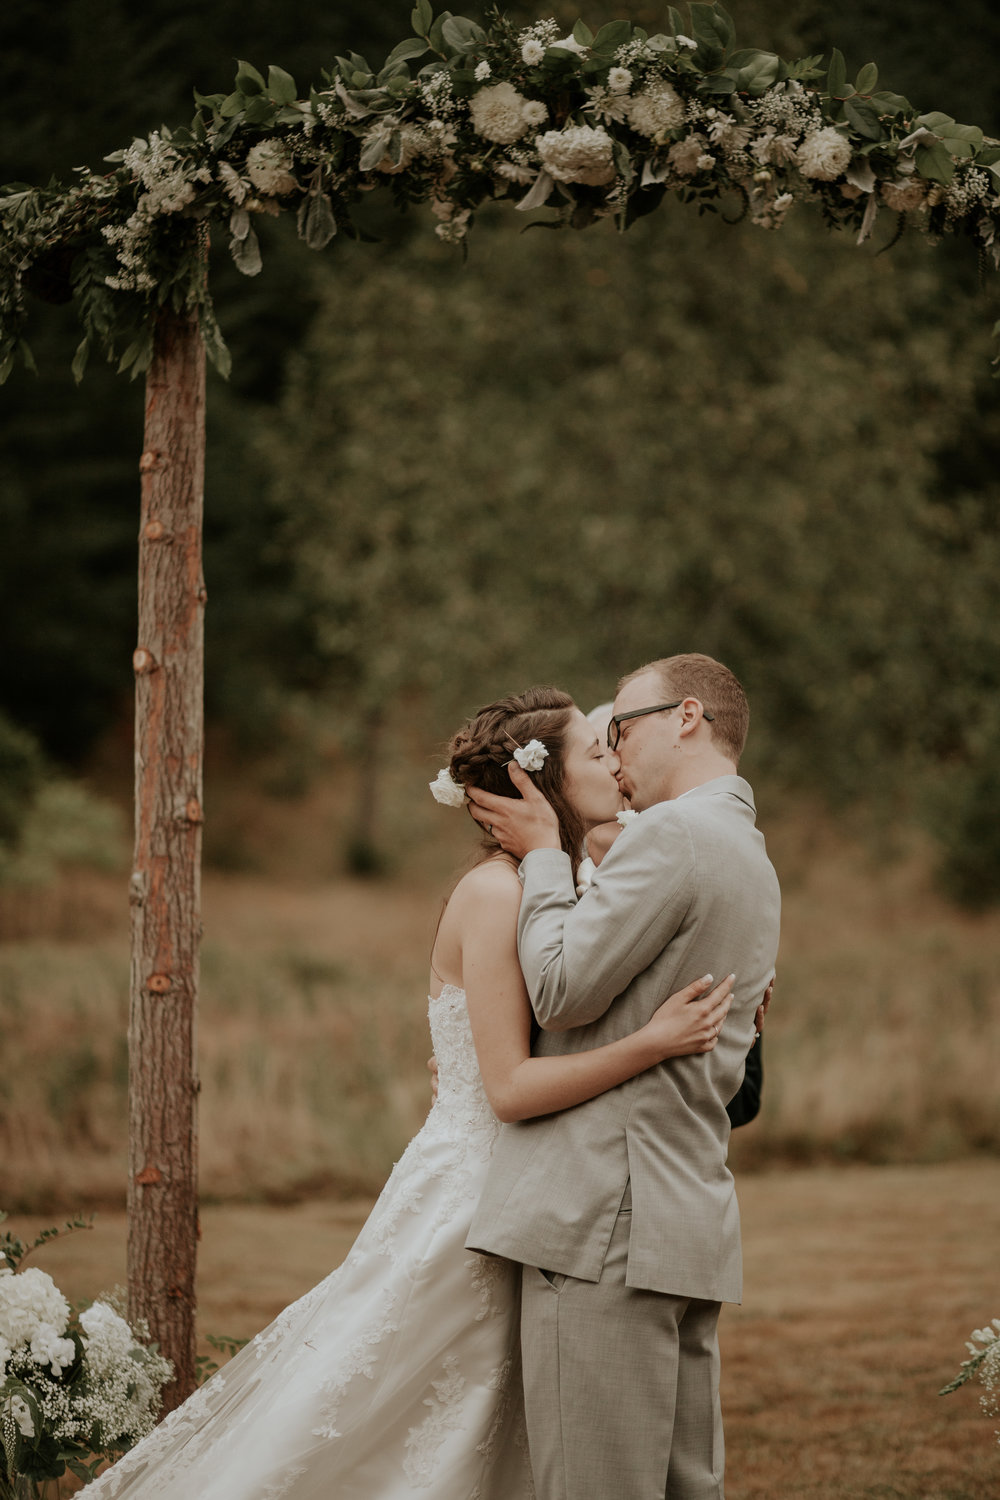 Port-Angeles-elopement-wedding-pnw-olympic-peninsula-photographer-portrait-kayladawnphoto-kayla-dawn-photography-olympic-national-park-80.jpg